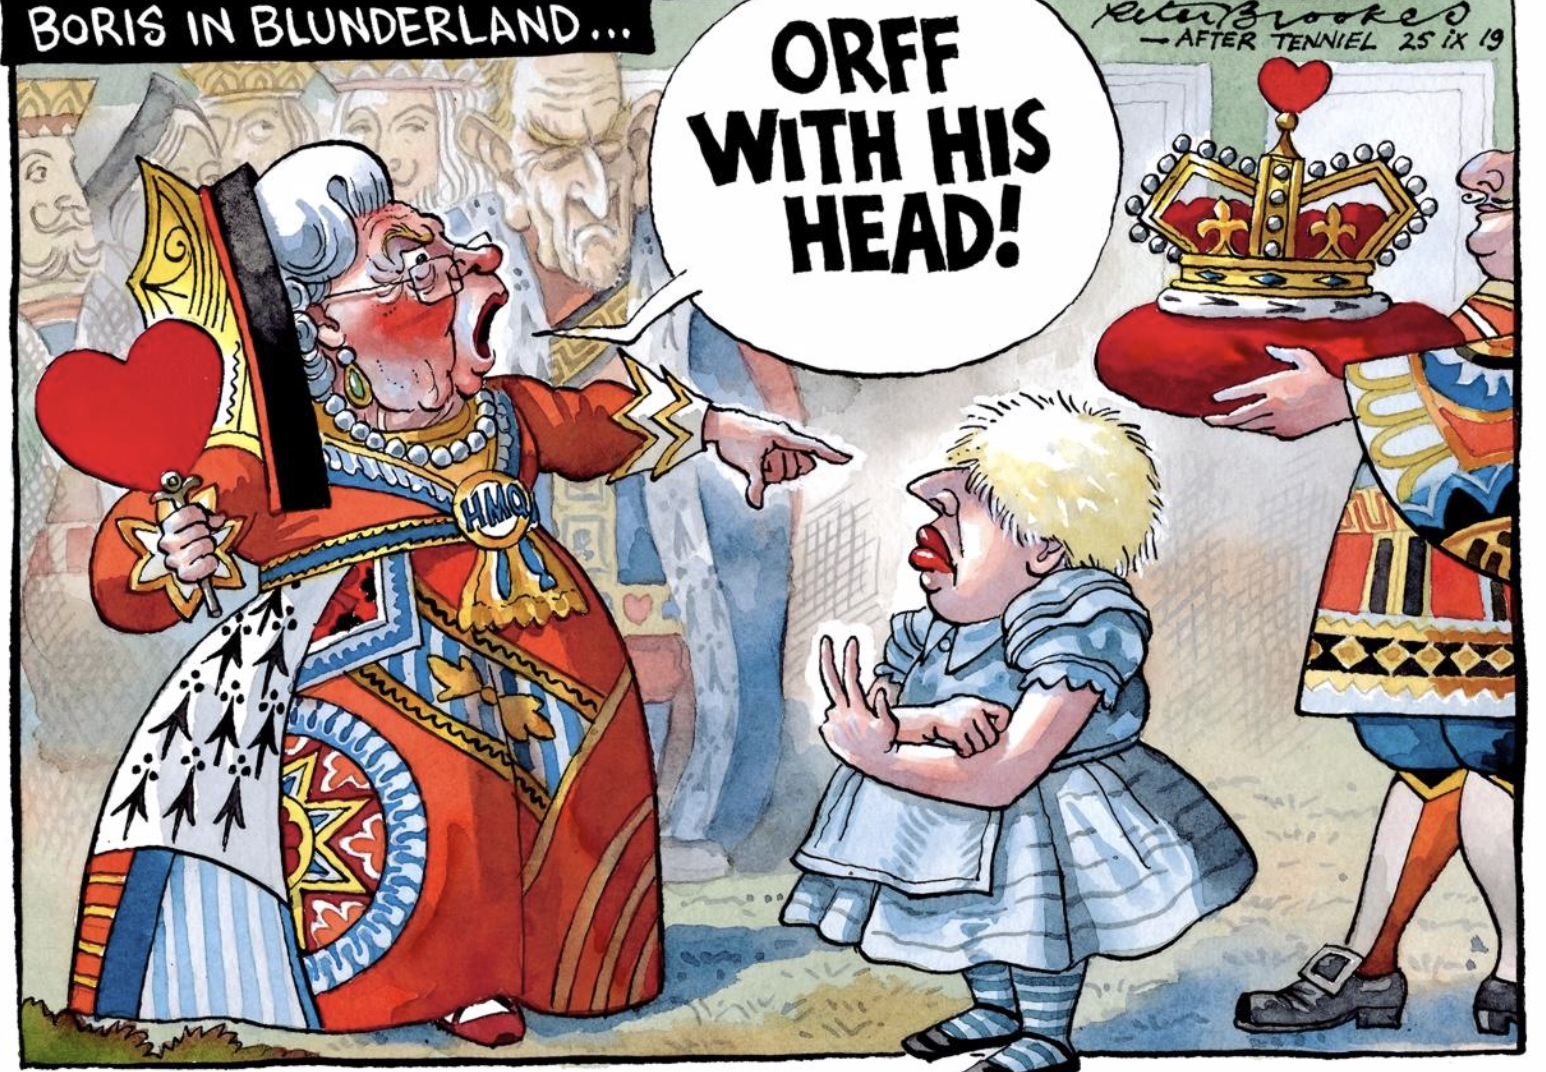 Boris in Blunderland